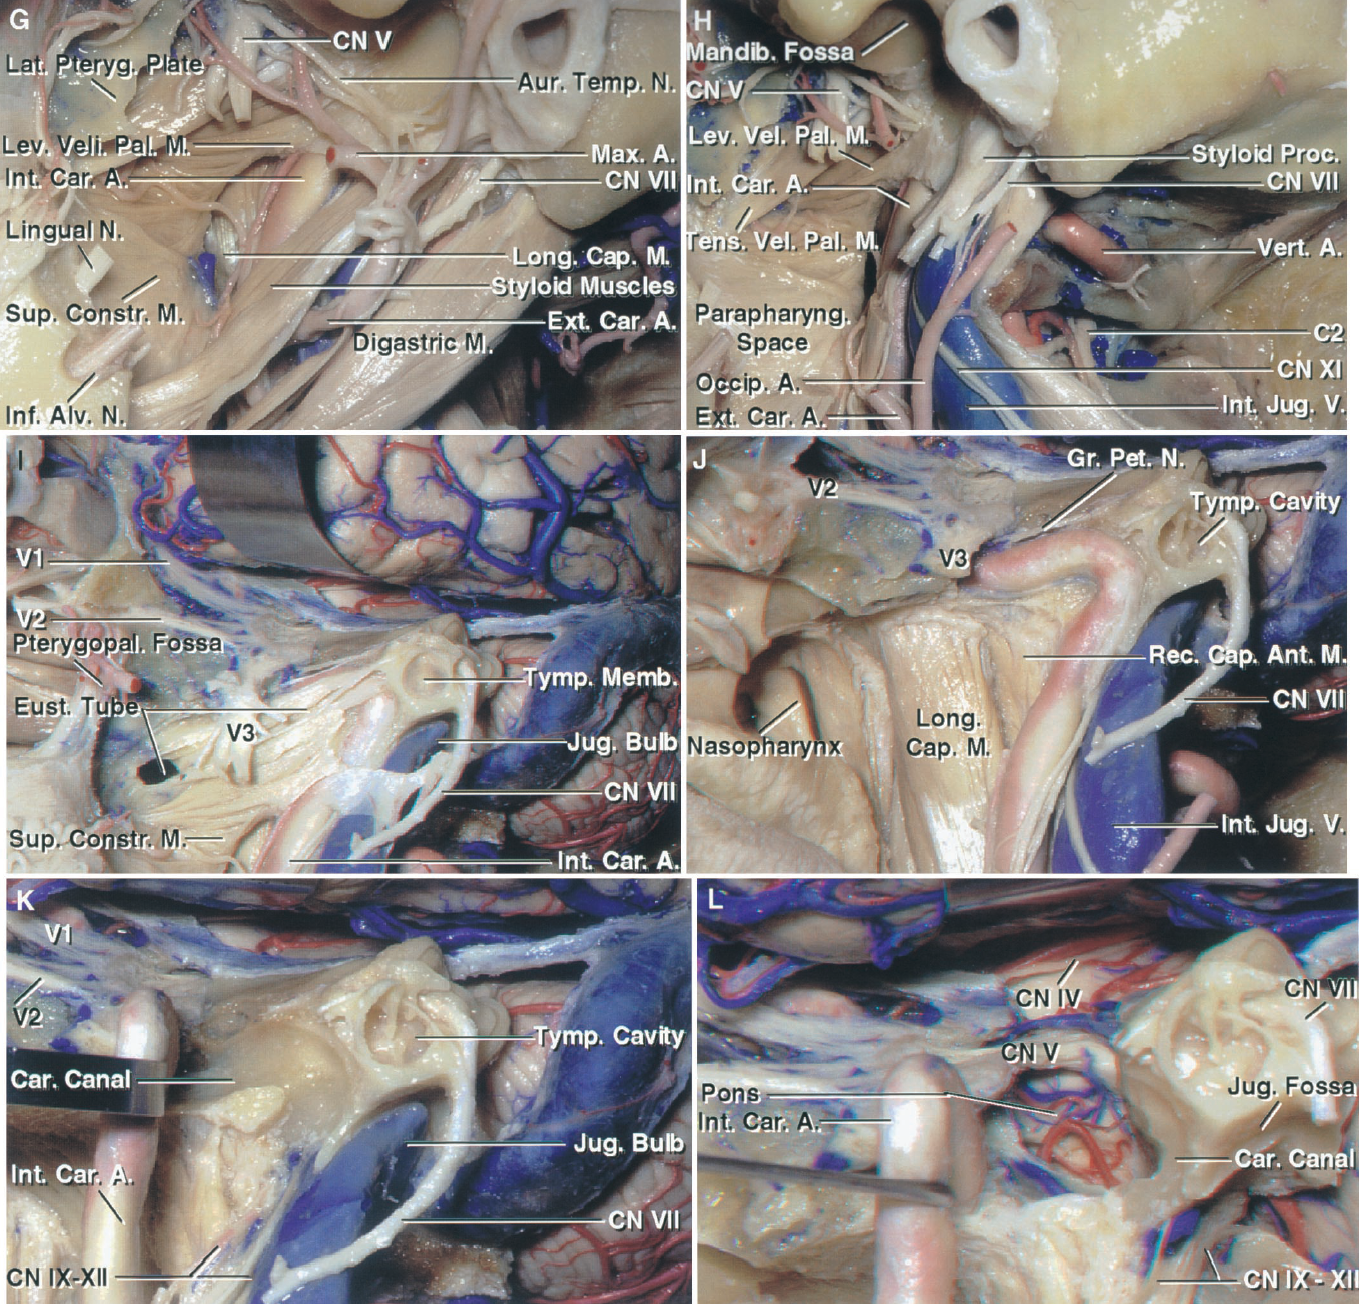 FIGURE 8.5. G–L. Muscular and osseous relationships. G, the mandibular condyle and ramus have been removed to expose the styloid process and attached muscles. The pterygoid muscles and some branches of the mandibular nerve have been removed to expose the auriculotemporal nerve, which splits into two roots that surround the middle meningeal artery. The levator veli palatini, which attaches the lower margin of the eustachian tube, is in the medial part of the exposure. The longus capitis is exposed medial to the internal carotid artery in the retropharyngeal area. H, the muscles that attach to the styloid process have been divided at their origin. The facial nerve crosses the lateral surface of the styloid process. The attachment of the tensor veli palatine to the skull base extends between the foramen ovale and the eustachian tube. I, the external auditory canal has been removed, but the tympanic membrane and cavity have been preserved. The levator veli palatine and part of the tensor veli palatine have been removed and the membranous part of the eustachian tube opened. The eustachian tube crosses anterior to and is separated from the petrous carotid by a thin shell of bone. The jugular bulb and lateral bend of the petrous carotid are located below the osseous labyrinth. The pterygopalatine fossa is exposed anteriorly. J, the eustachian tube has been resected and the mandibular nerve divided at the foramen ovale to expose the petrous carotid. This exposes the longus capitis and rectus capitis anterior, both of which are located behind the posterior pharyngeal wall. K, the petrous carotid has been reflected forward out of the carotid canal to expose the petrous apex medial to the carotid canal. L, the petrous apex and upper clivus have been drilled and the dura opened to expose the anterolateral aspect of the pons below the trigeminal nerve. The sigmoid sinus and the jugular bulb have been removed to expose the nerves exiting the jugular foramen.